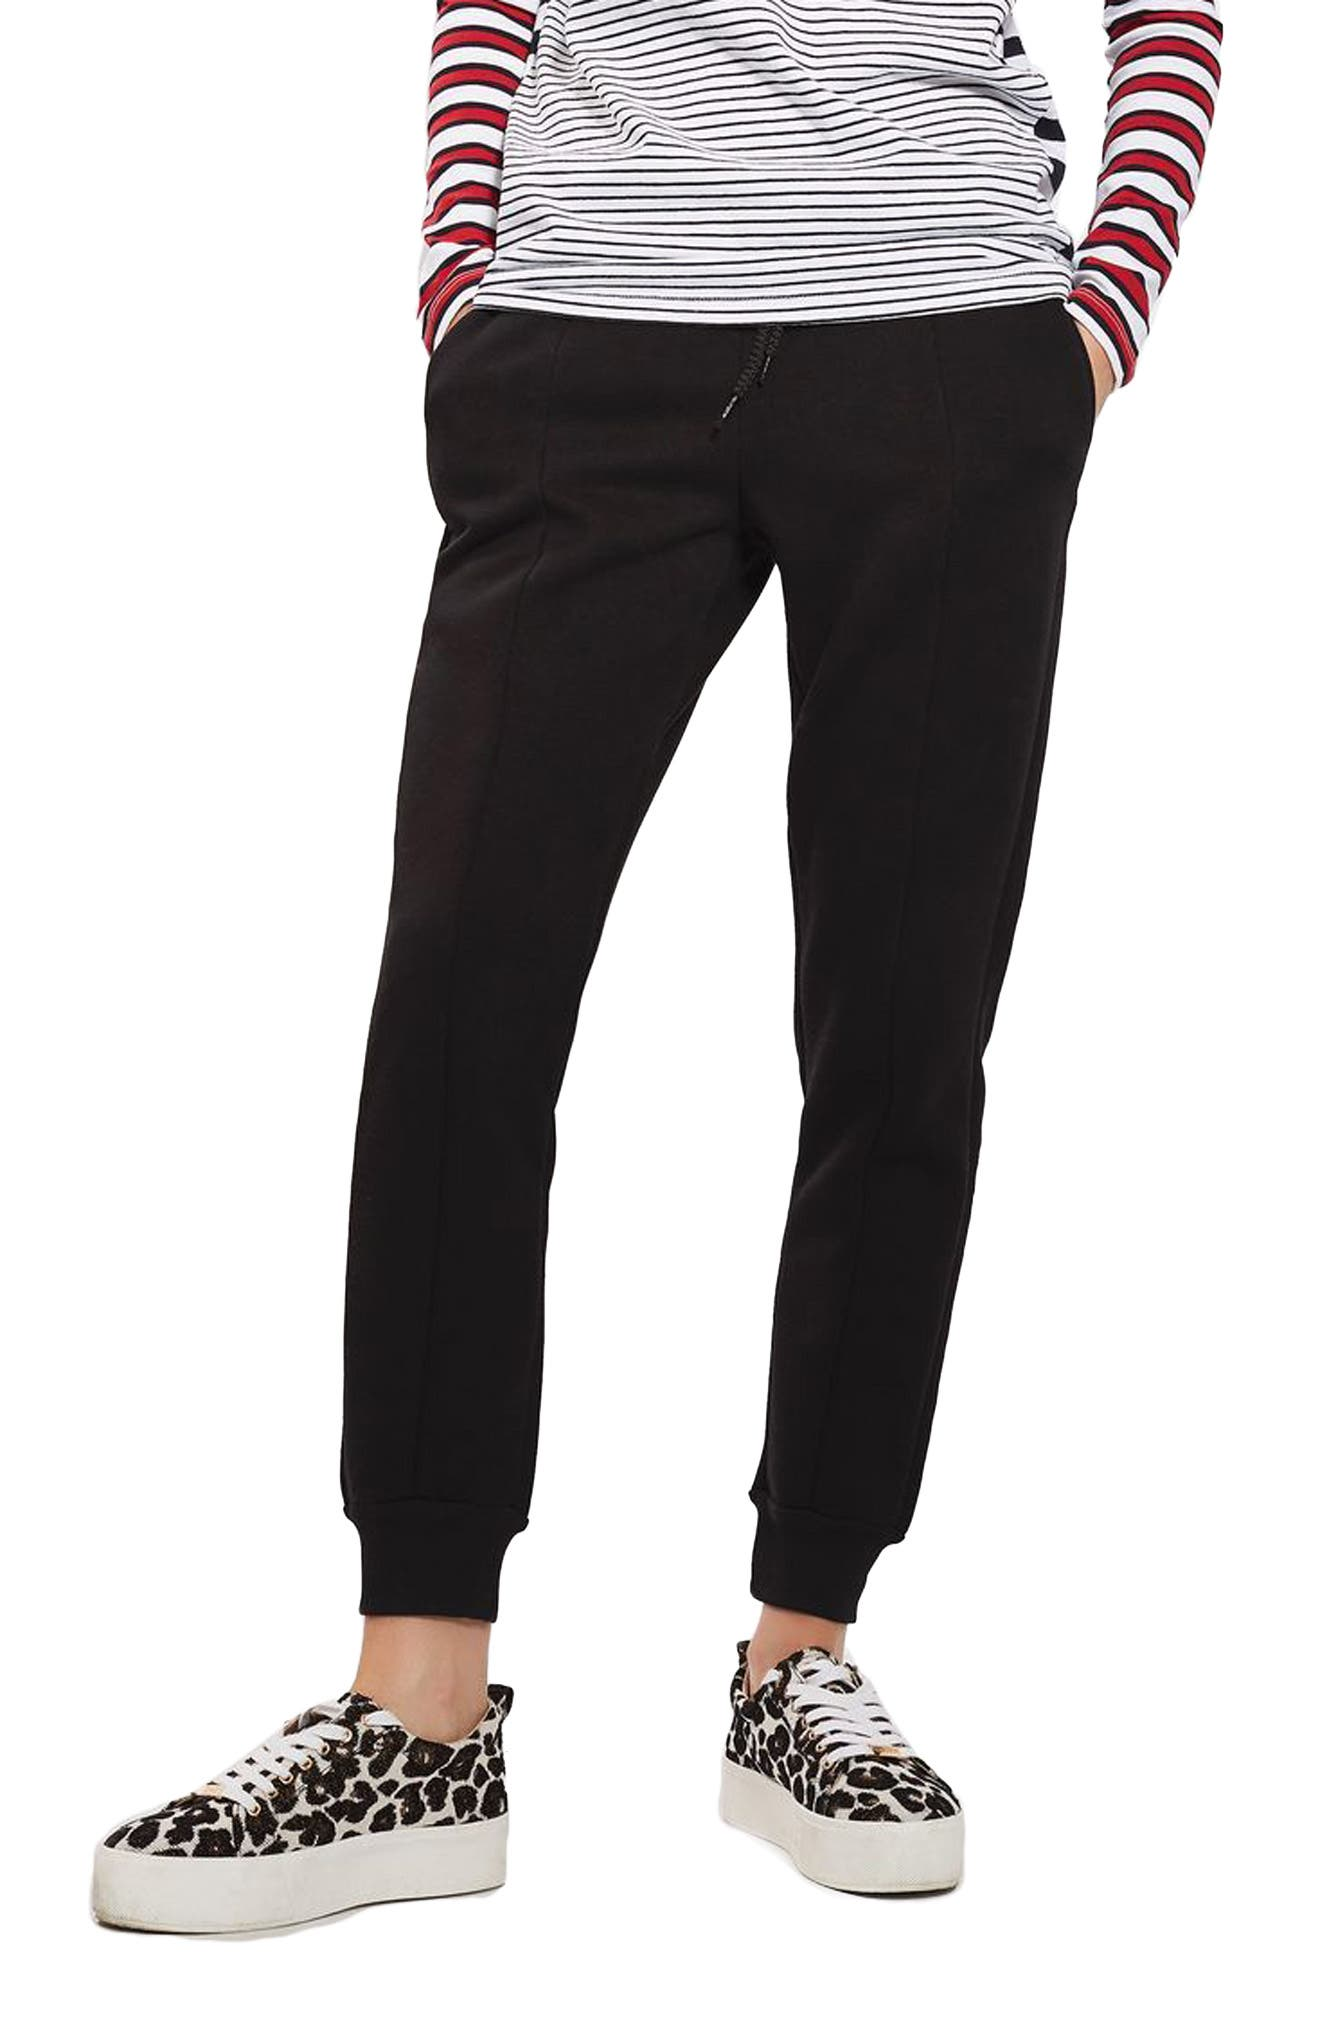 Topshop Clean Seam Jogger Pants